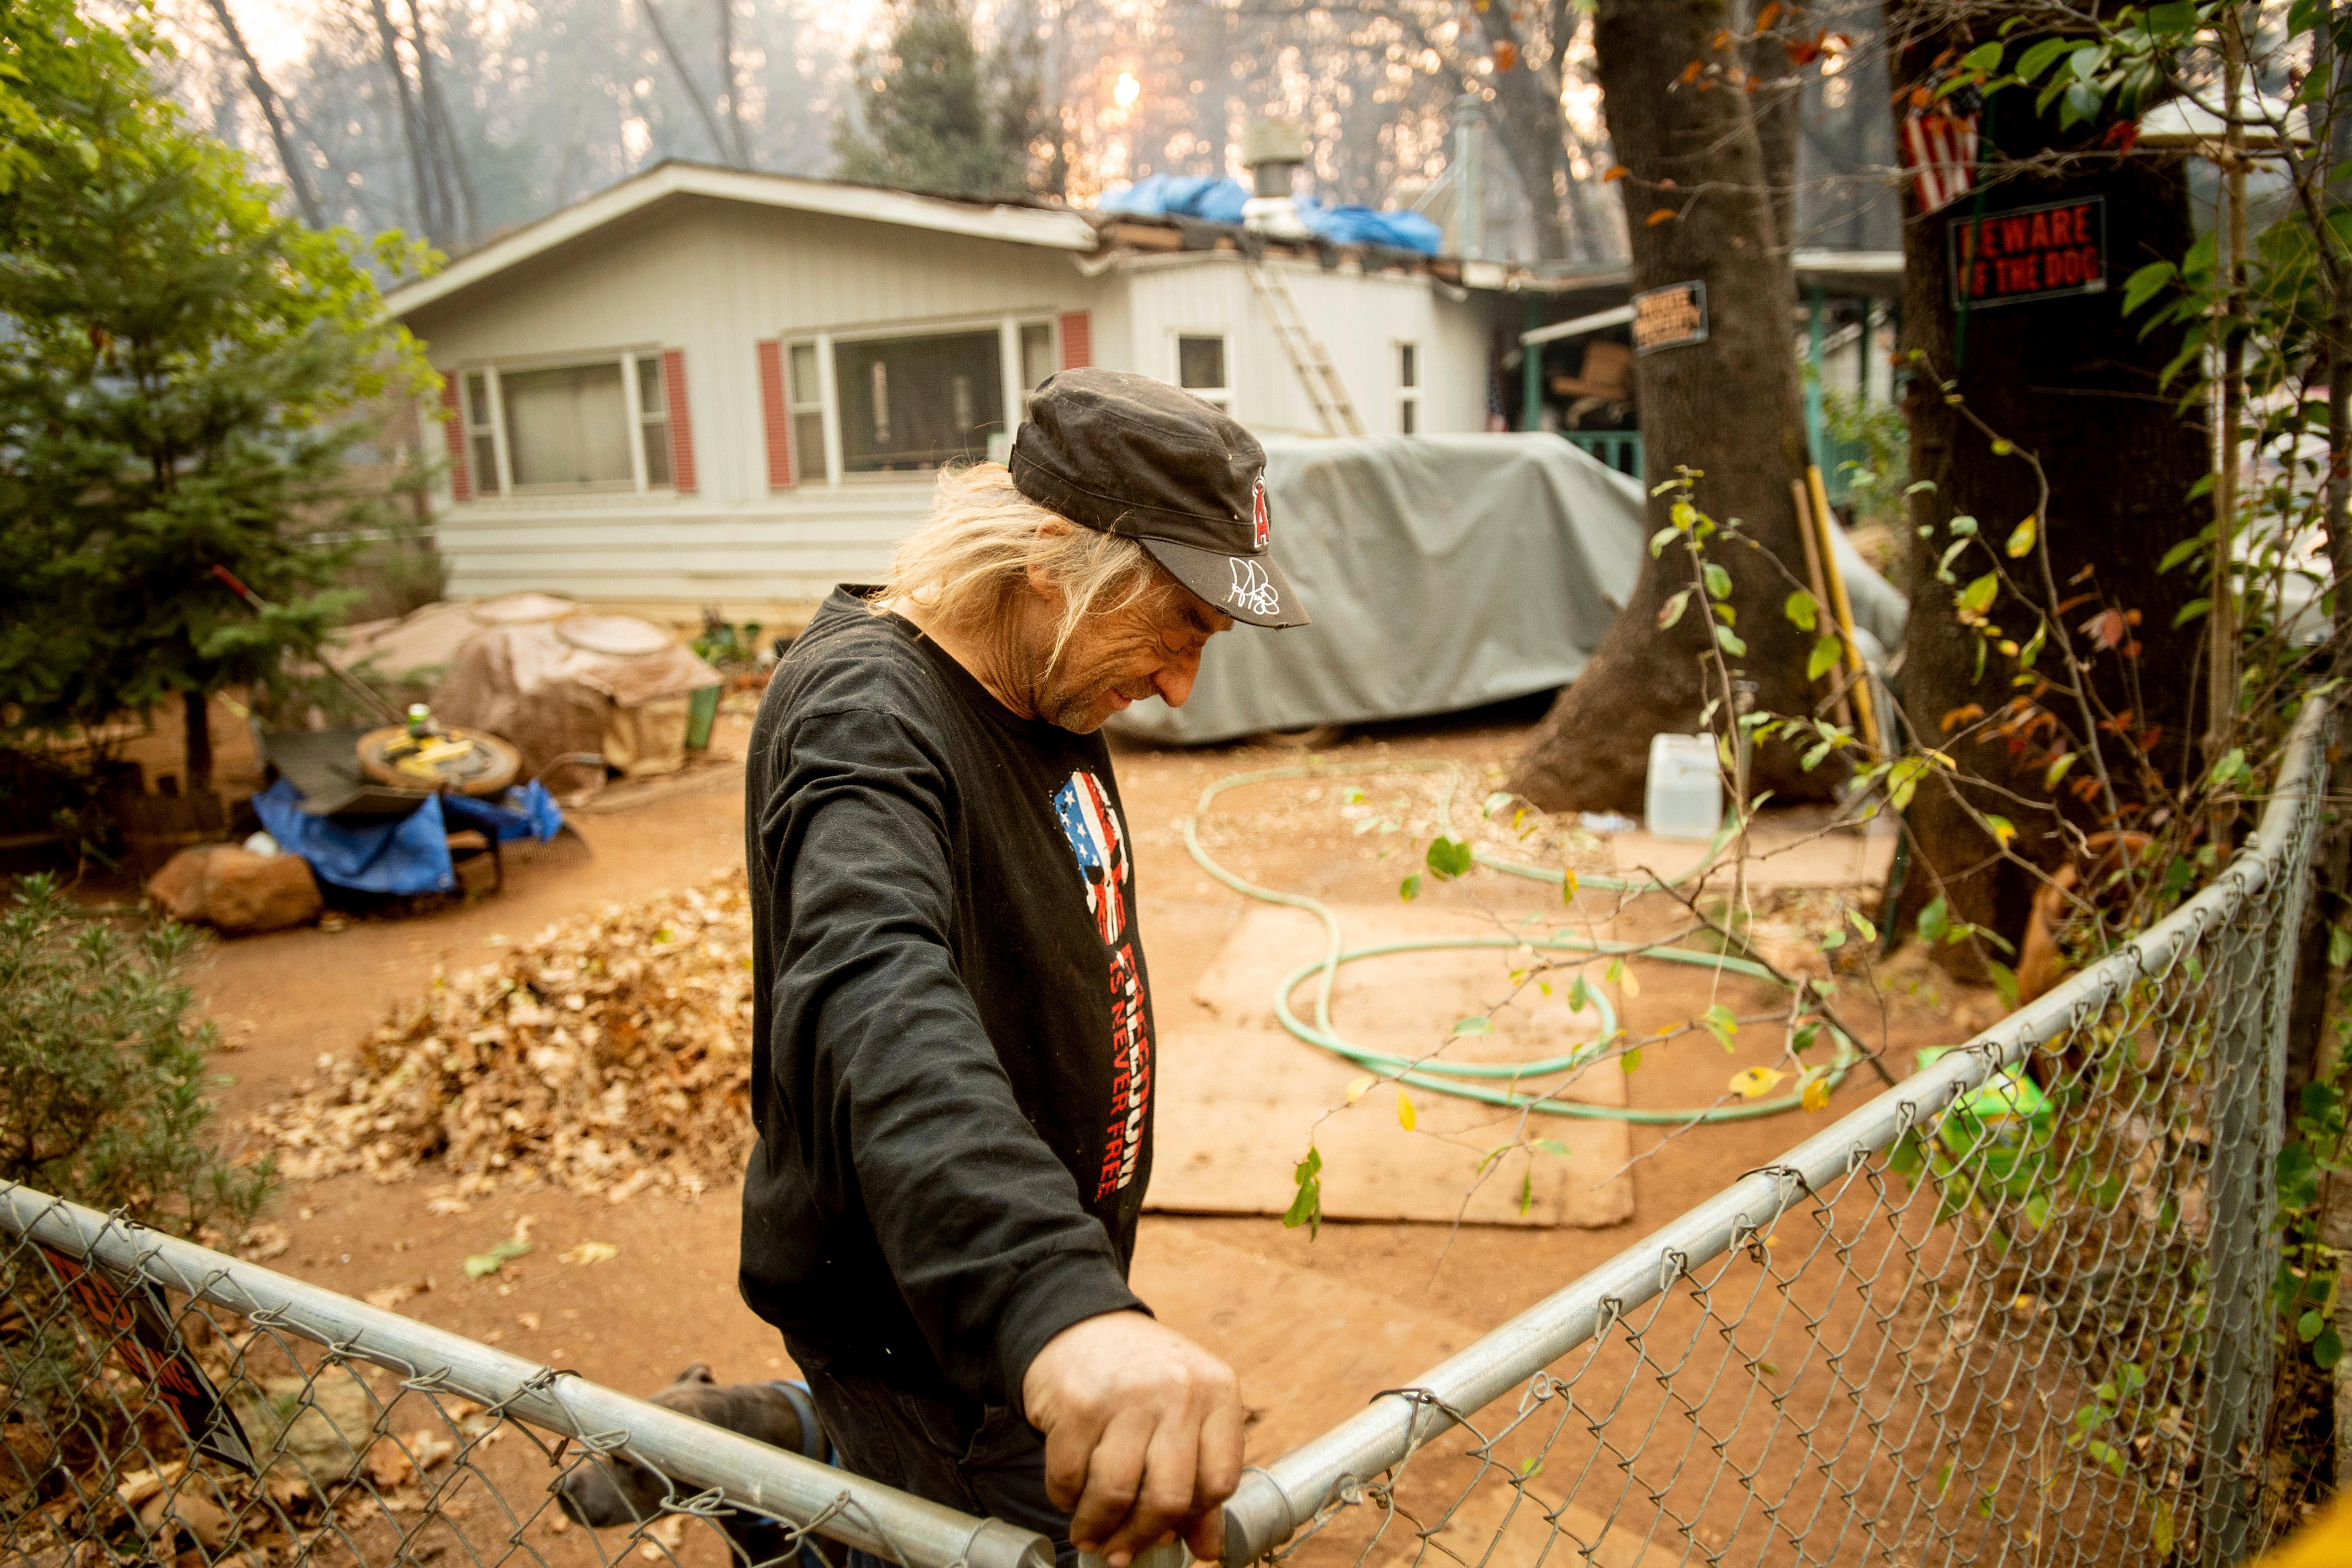 Jimmy Clements, who stayed at his home as the Camp Fire raged through Paradise, Calif., leans against his fence, Sunday, Nov. 11, 2018. Clements, whose home stands among destroyed residences, said he built an FM radio out of a potato and wire to keep up with news about the fire. (AP Photo/Noah Berger)